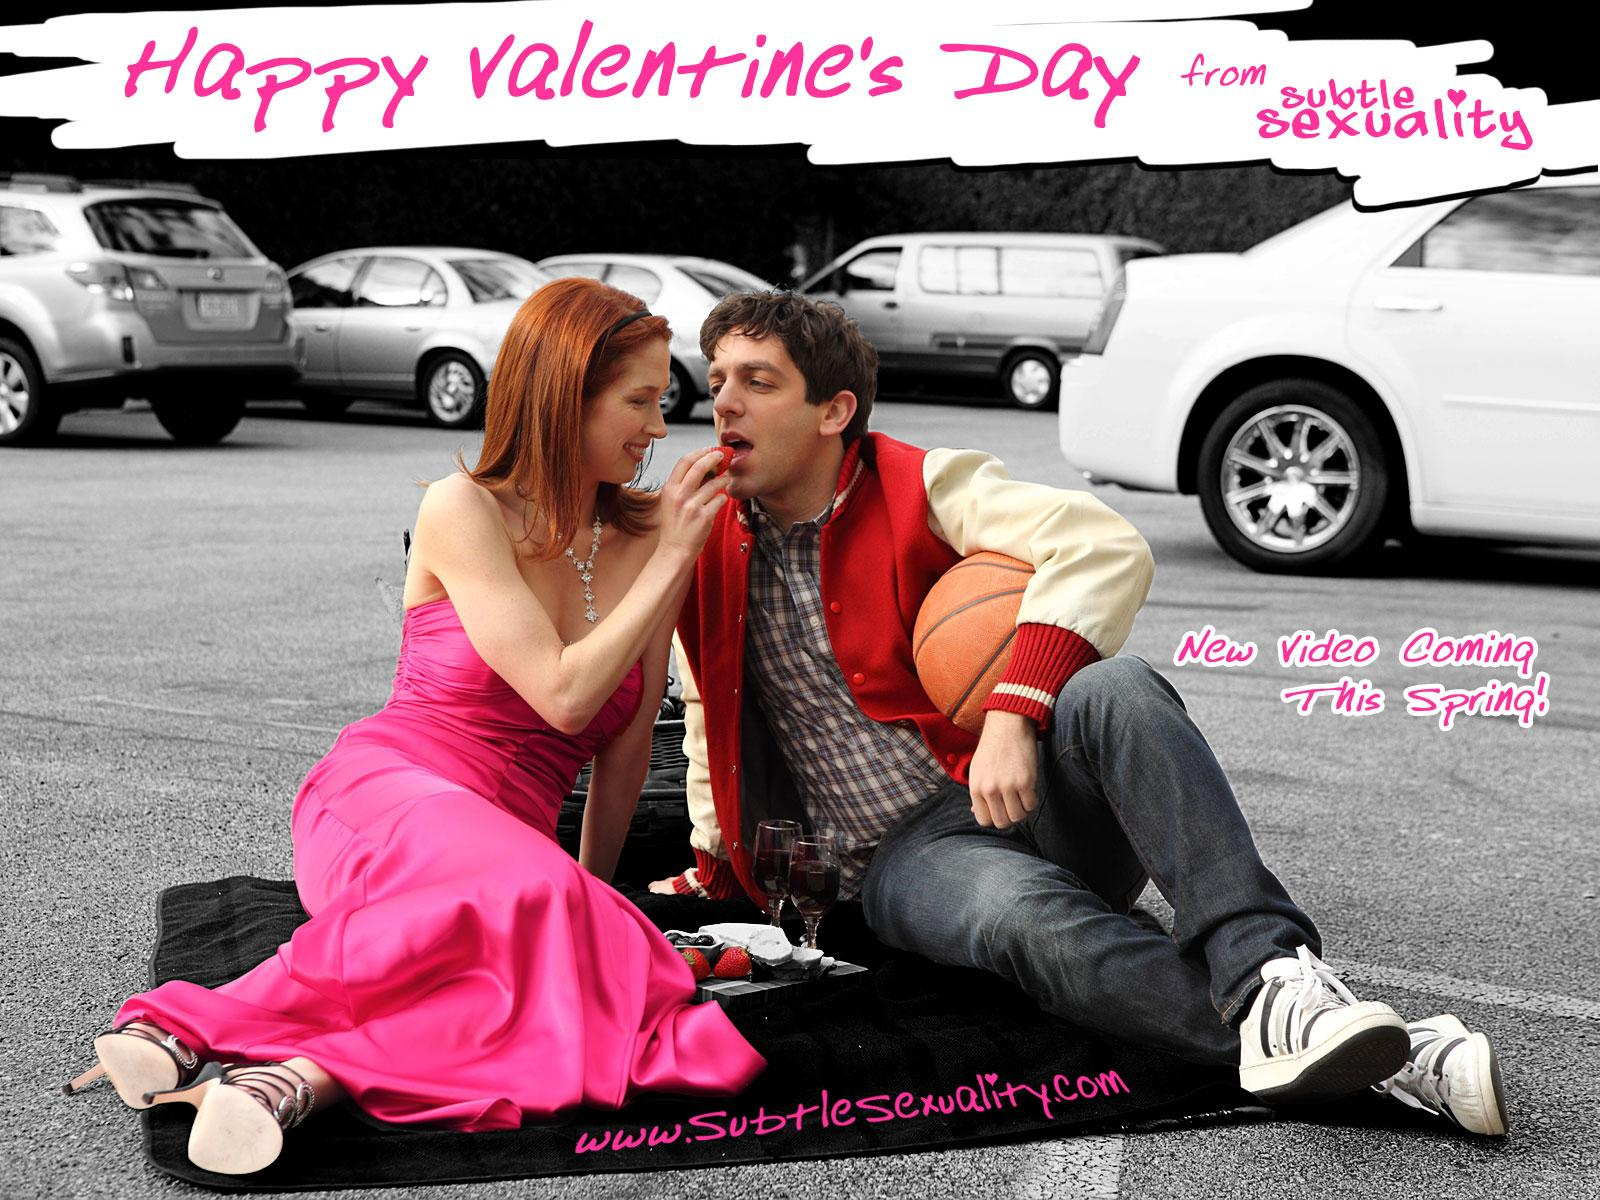 The Office Valentine's Day wallpapers • OfficeTally